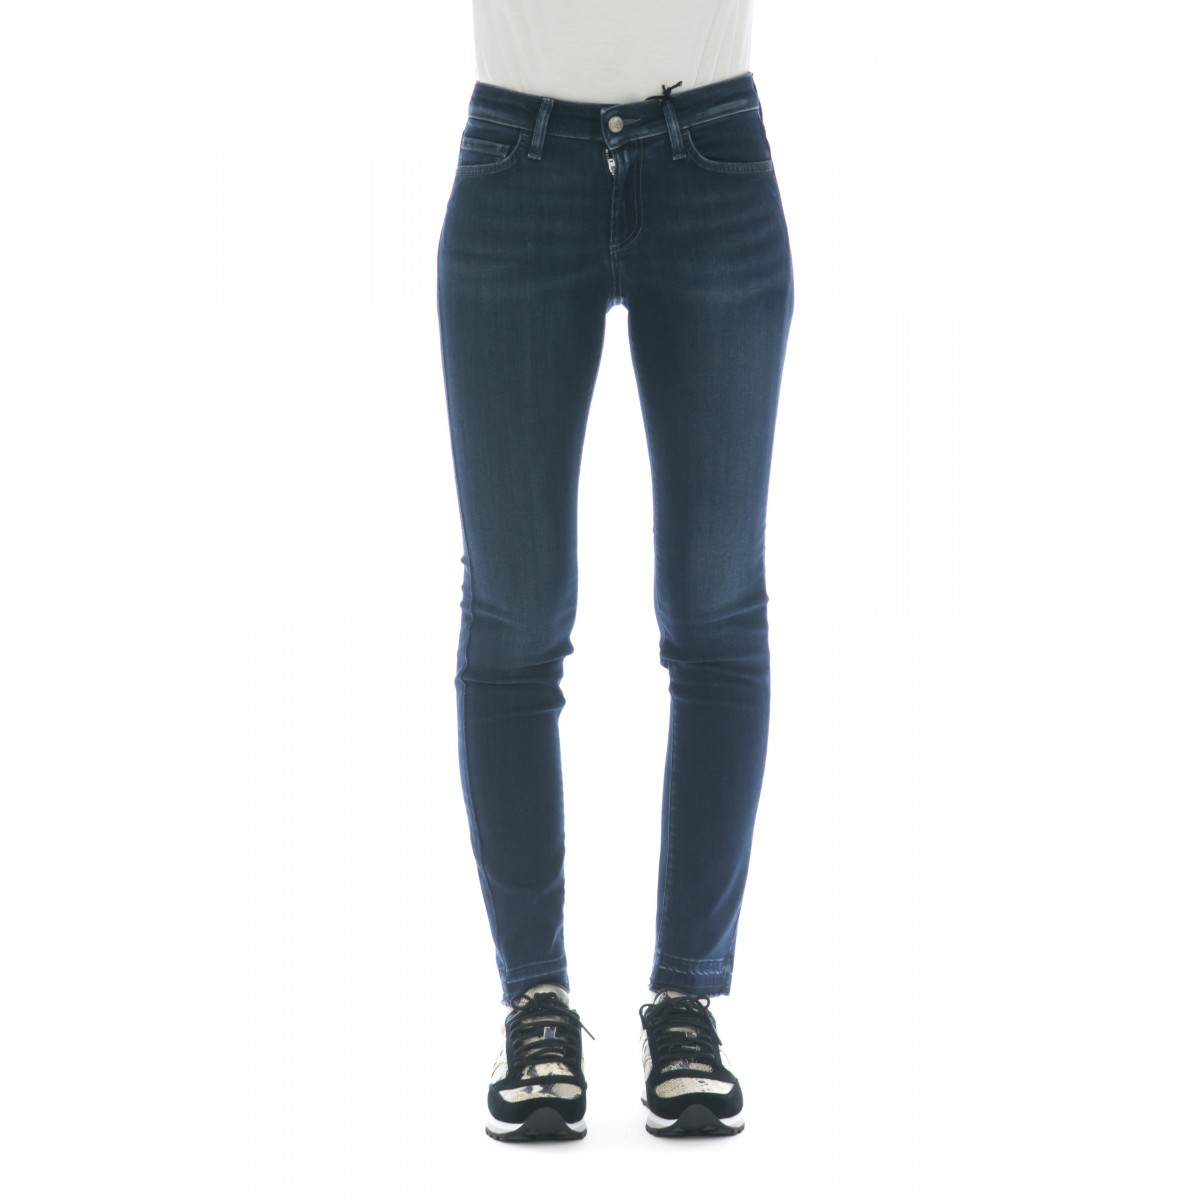 Jeans - Pushup frick